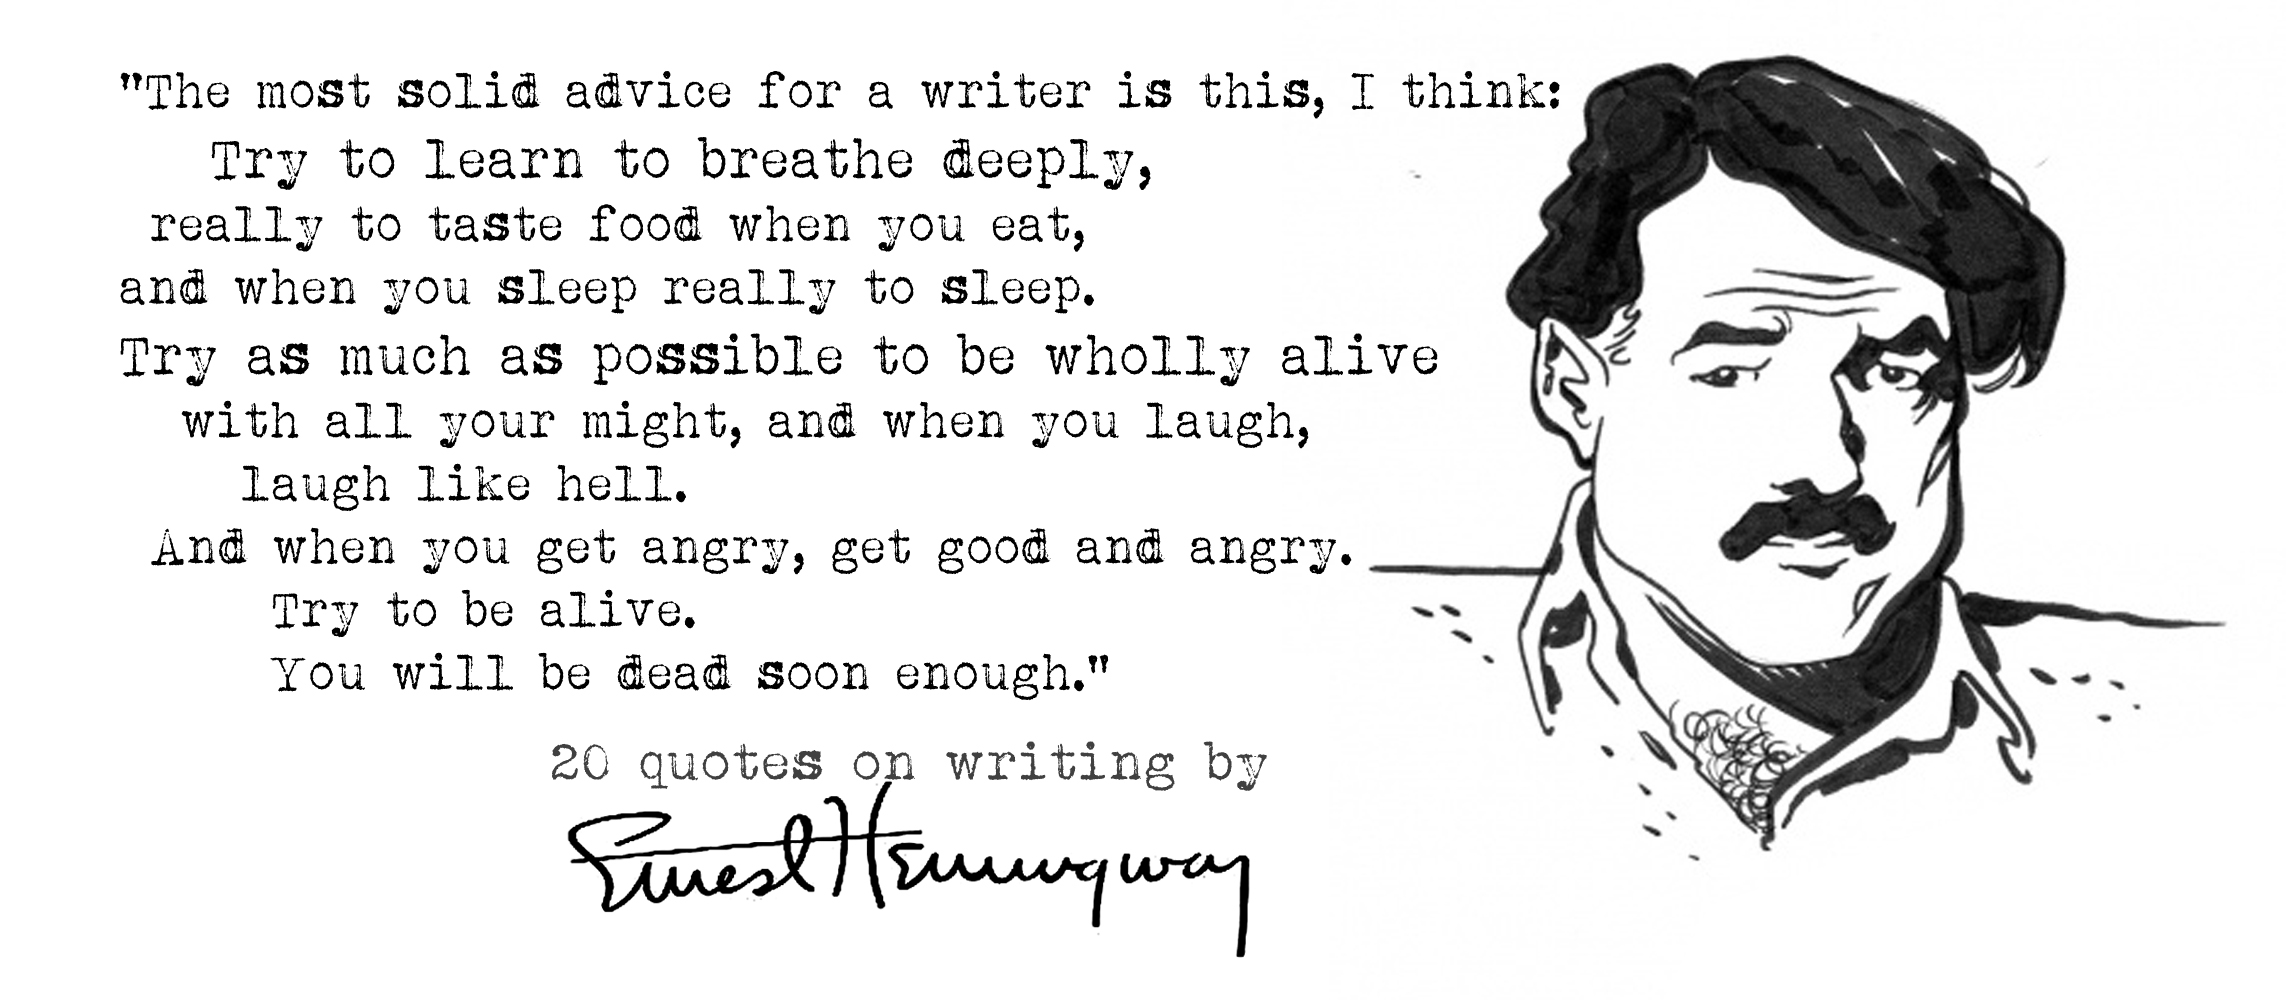 Ernest Hemingway\'s 20 Quotes on Writing |